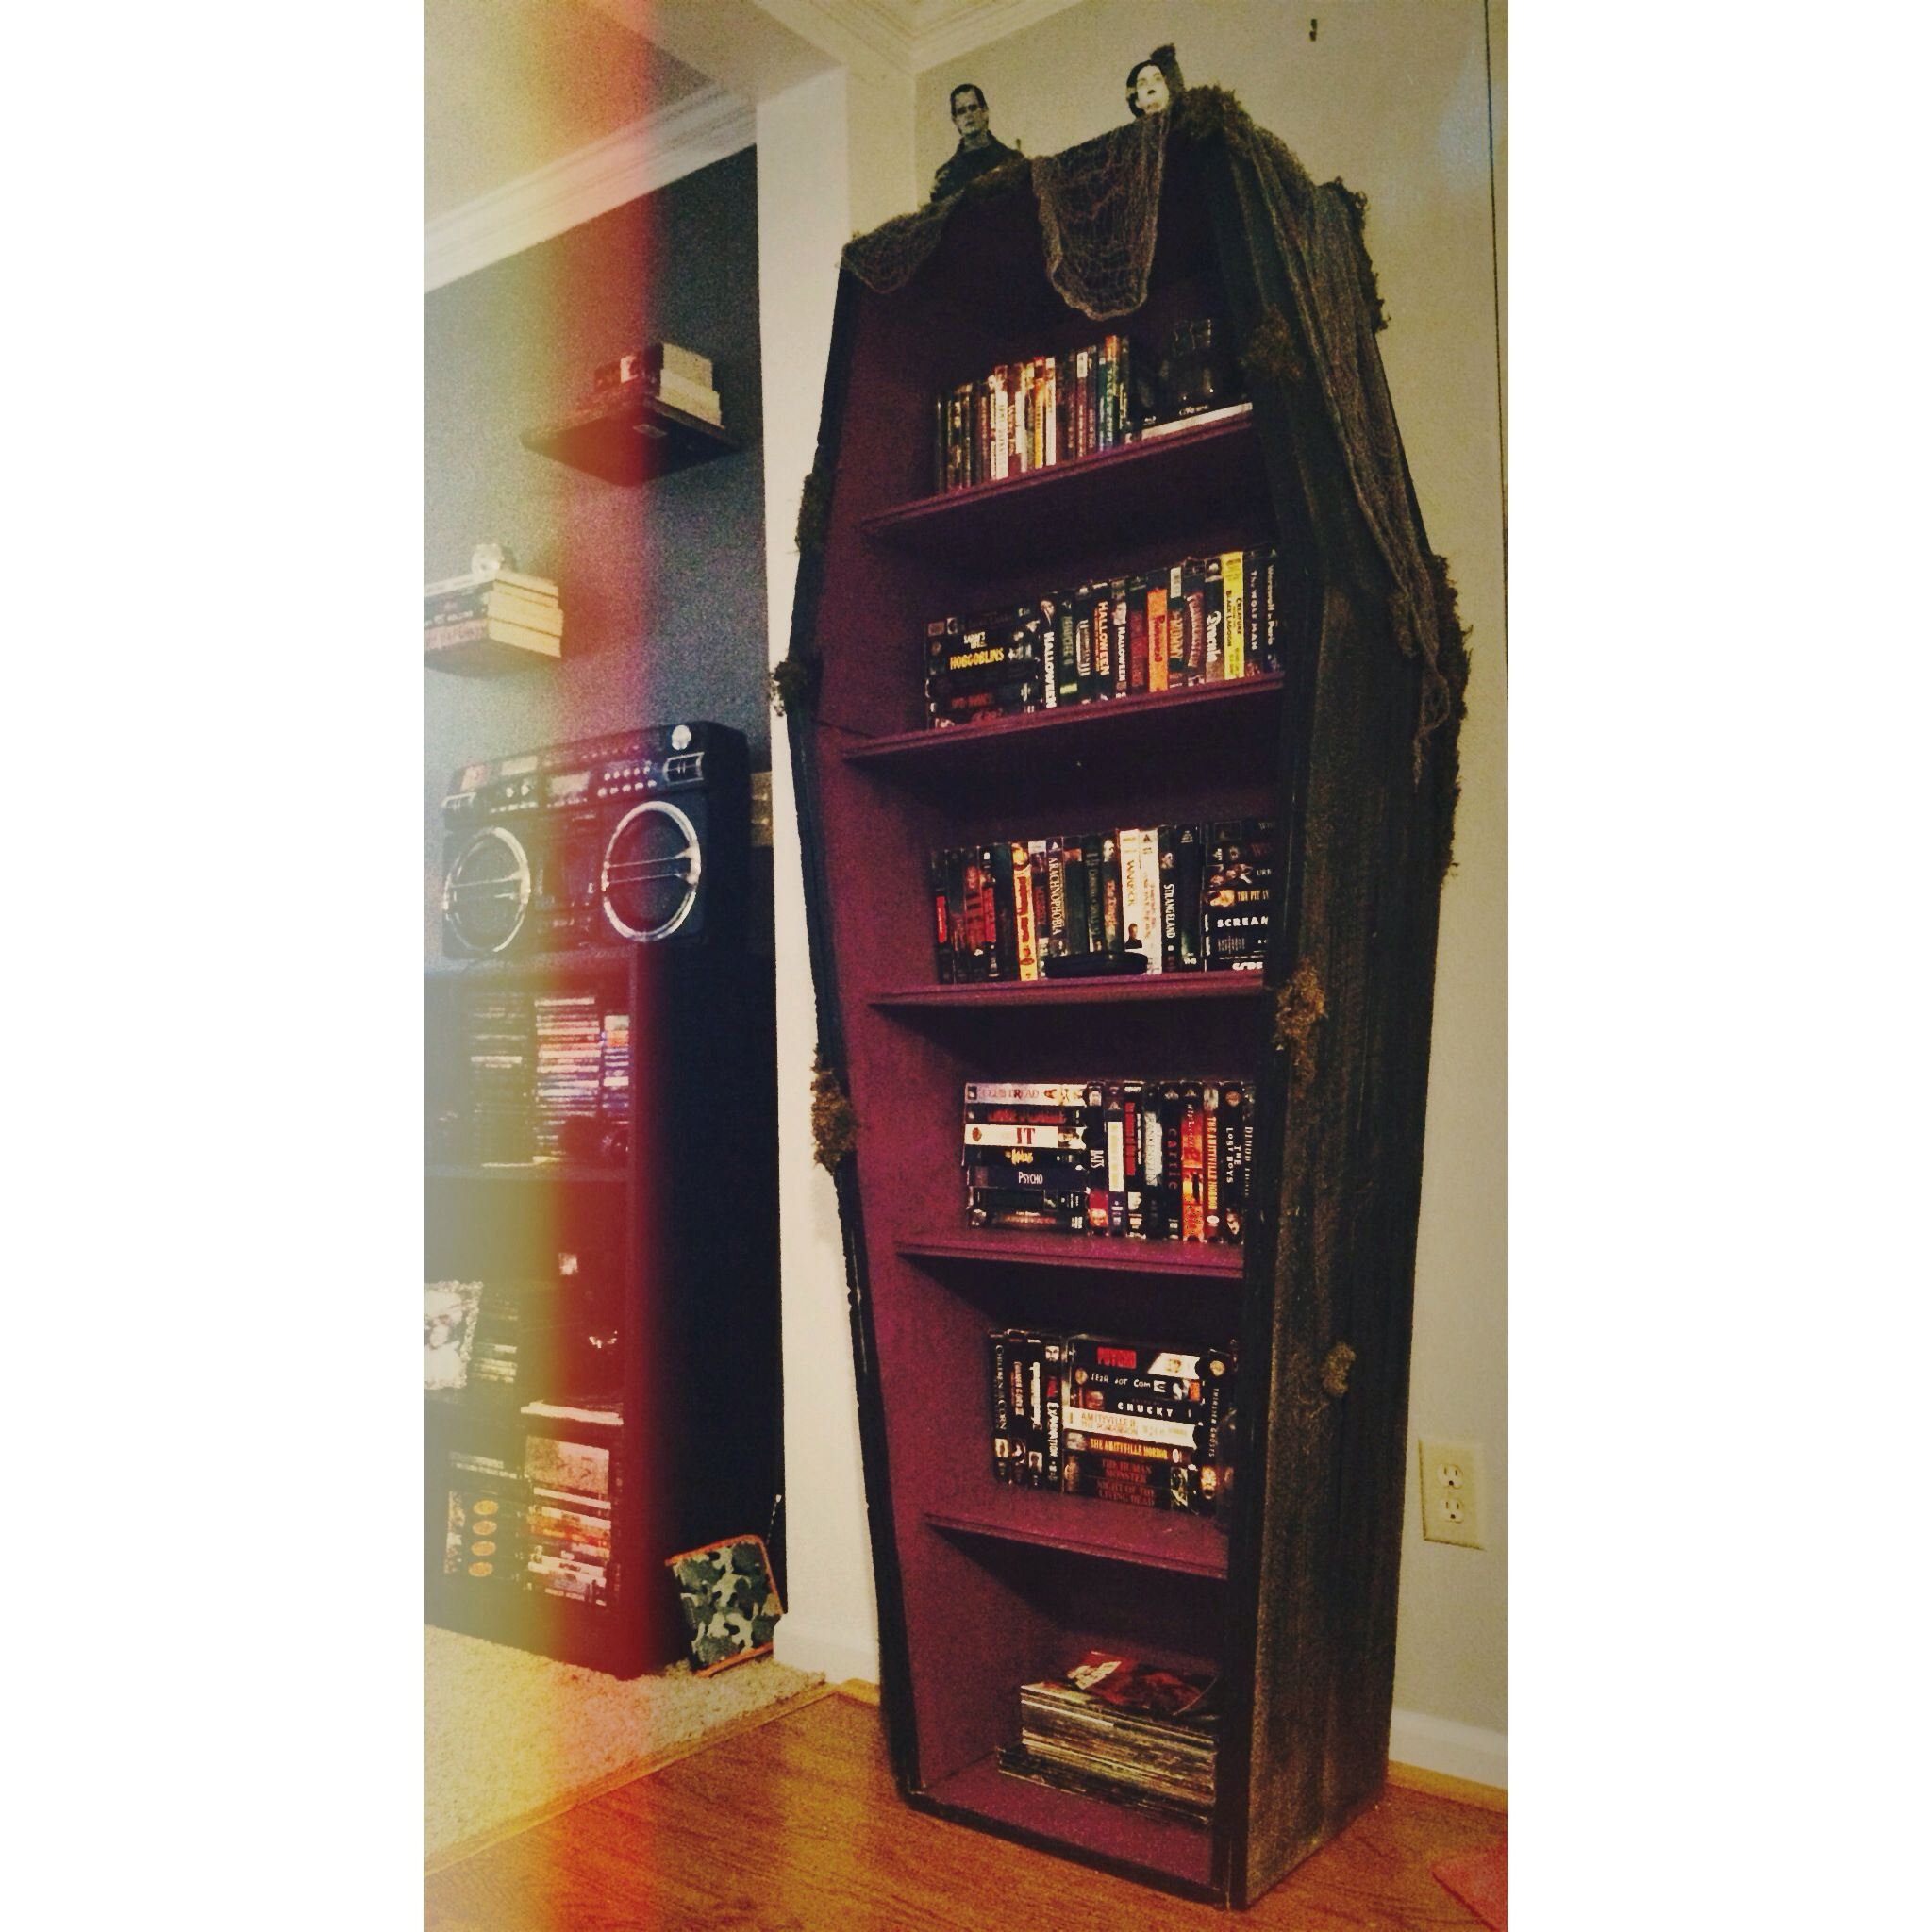 My coffin bookshelf More fore sale Message me if you want one